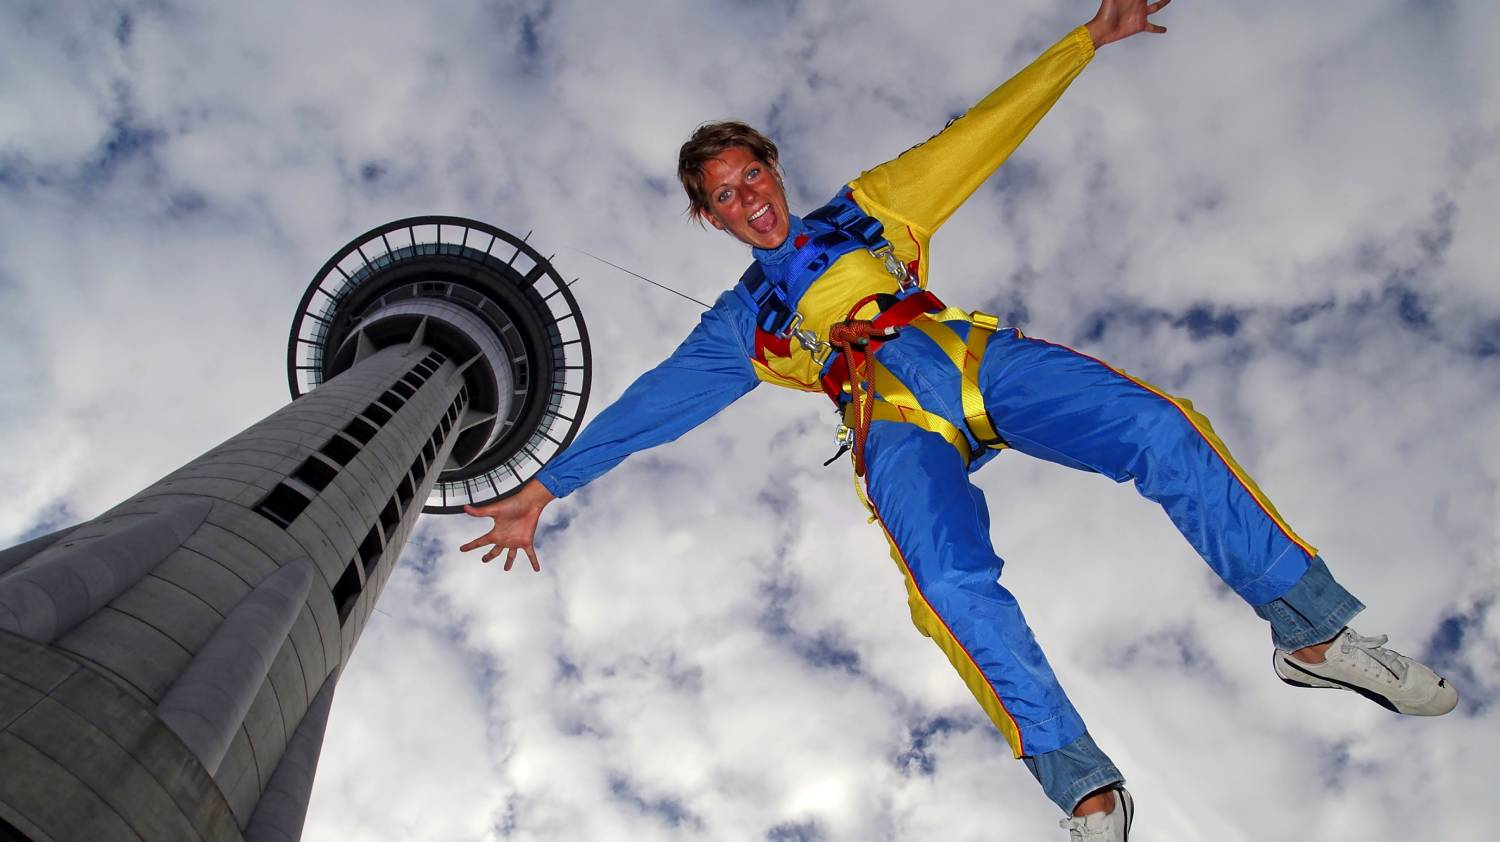 SkyJump Auckland - Things To Do In Auckland